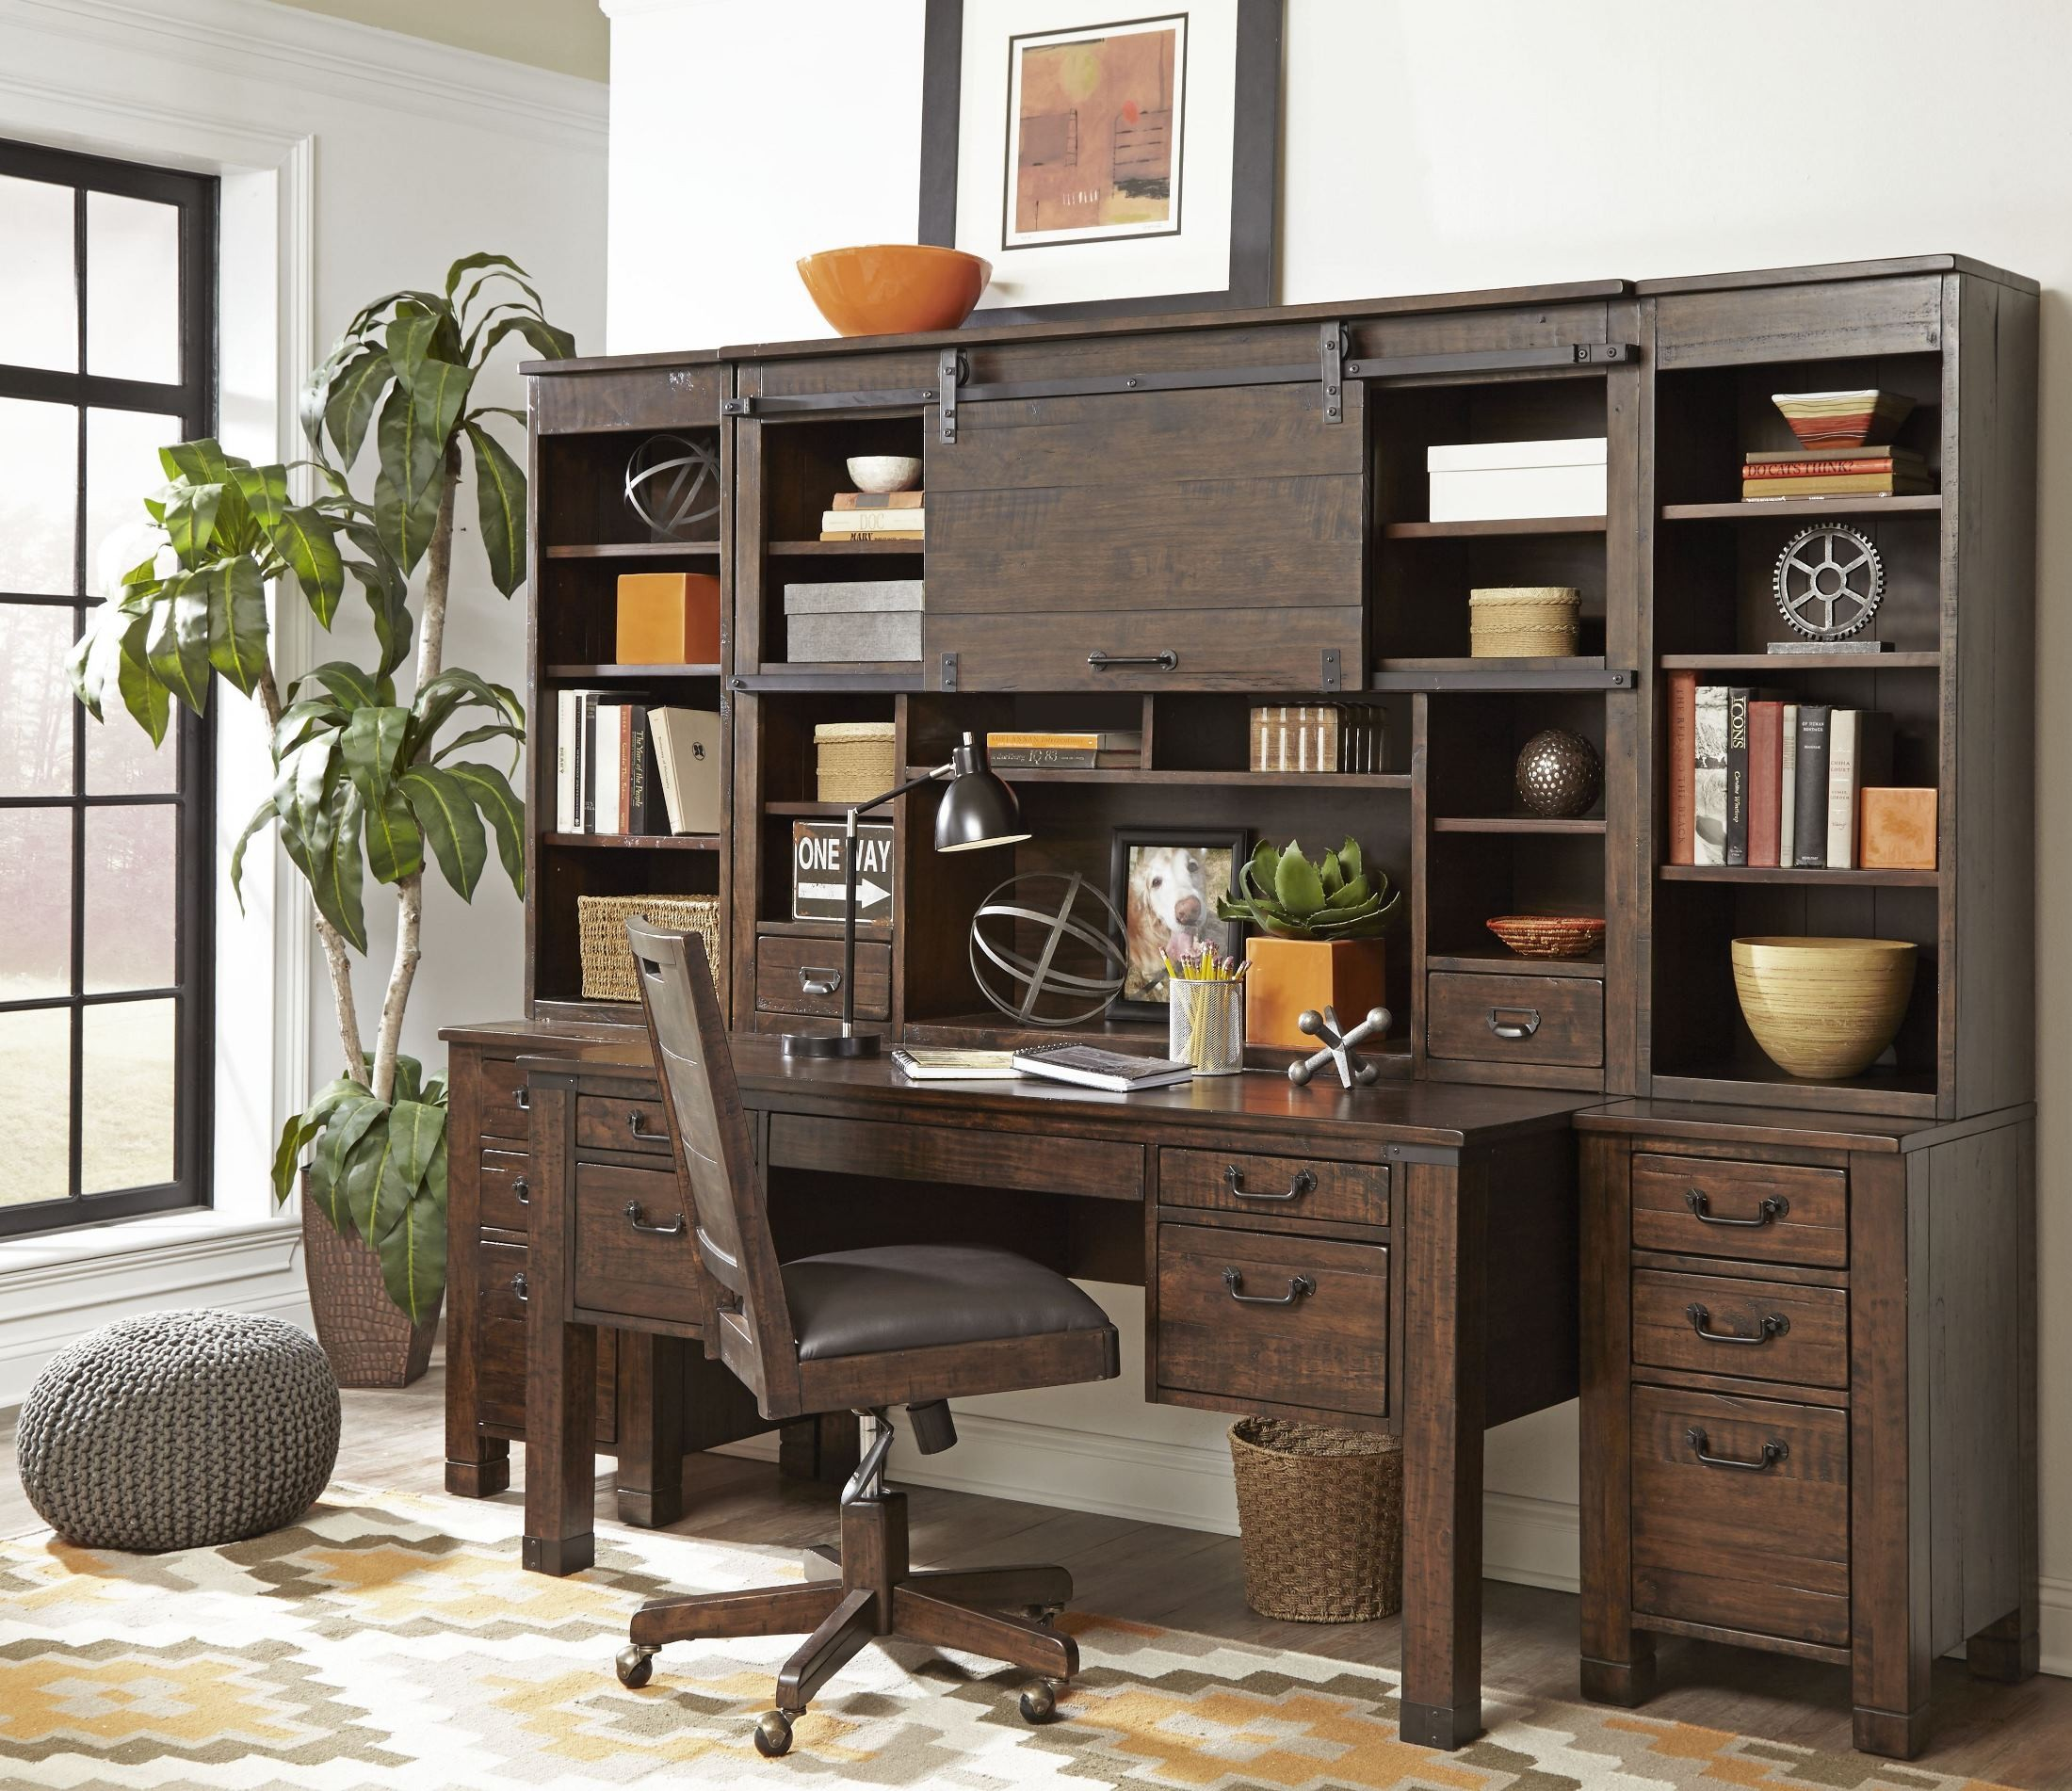 Rustic Home Office Interior Design: Pine Hill Rustic Pine Secretary Home Office Set From